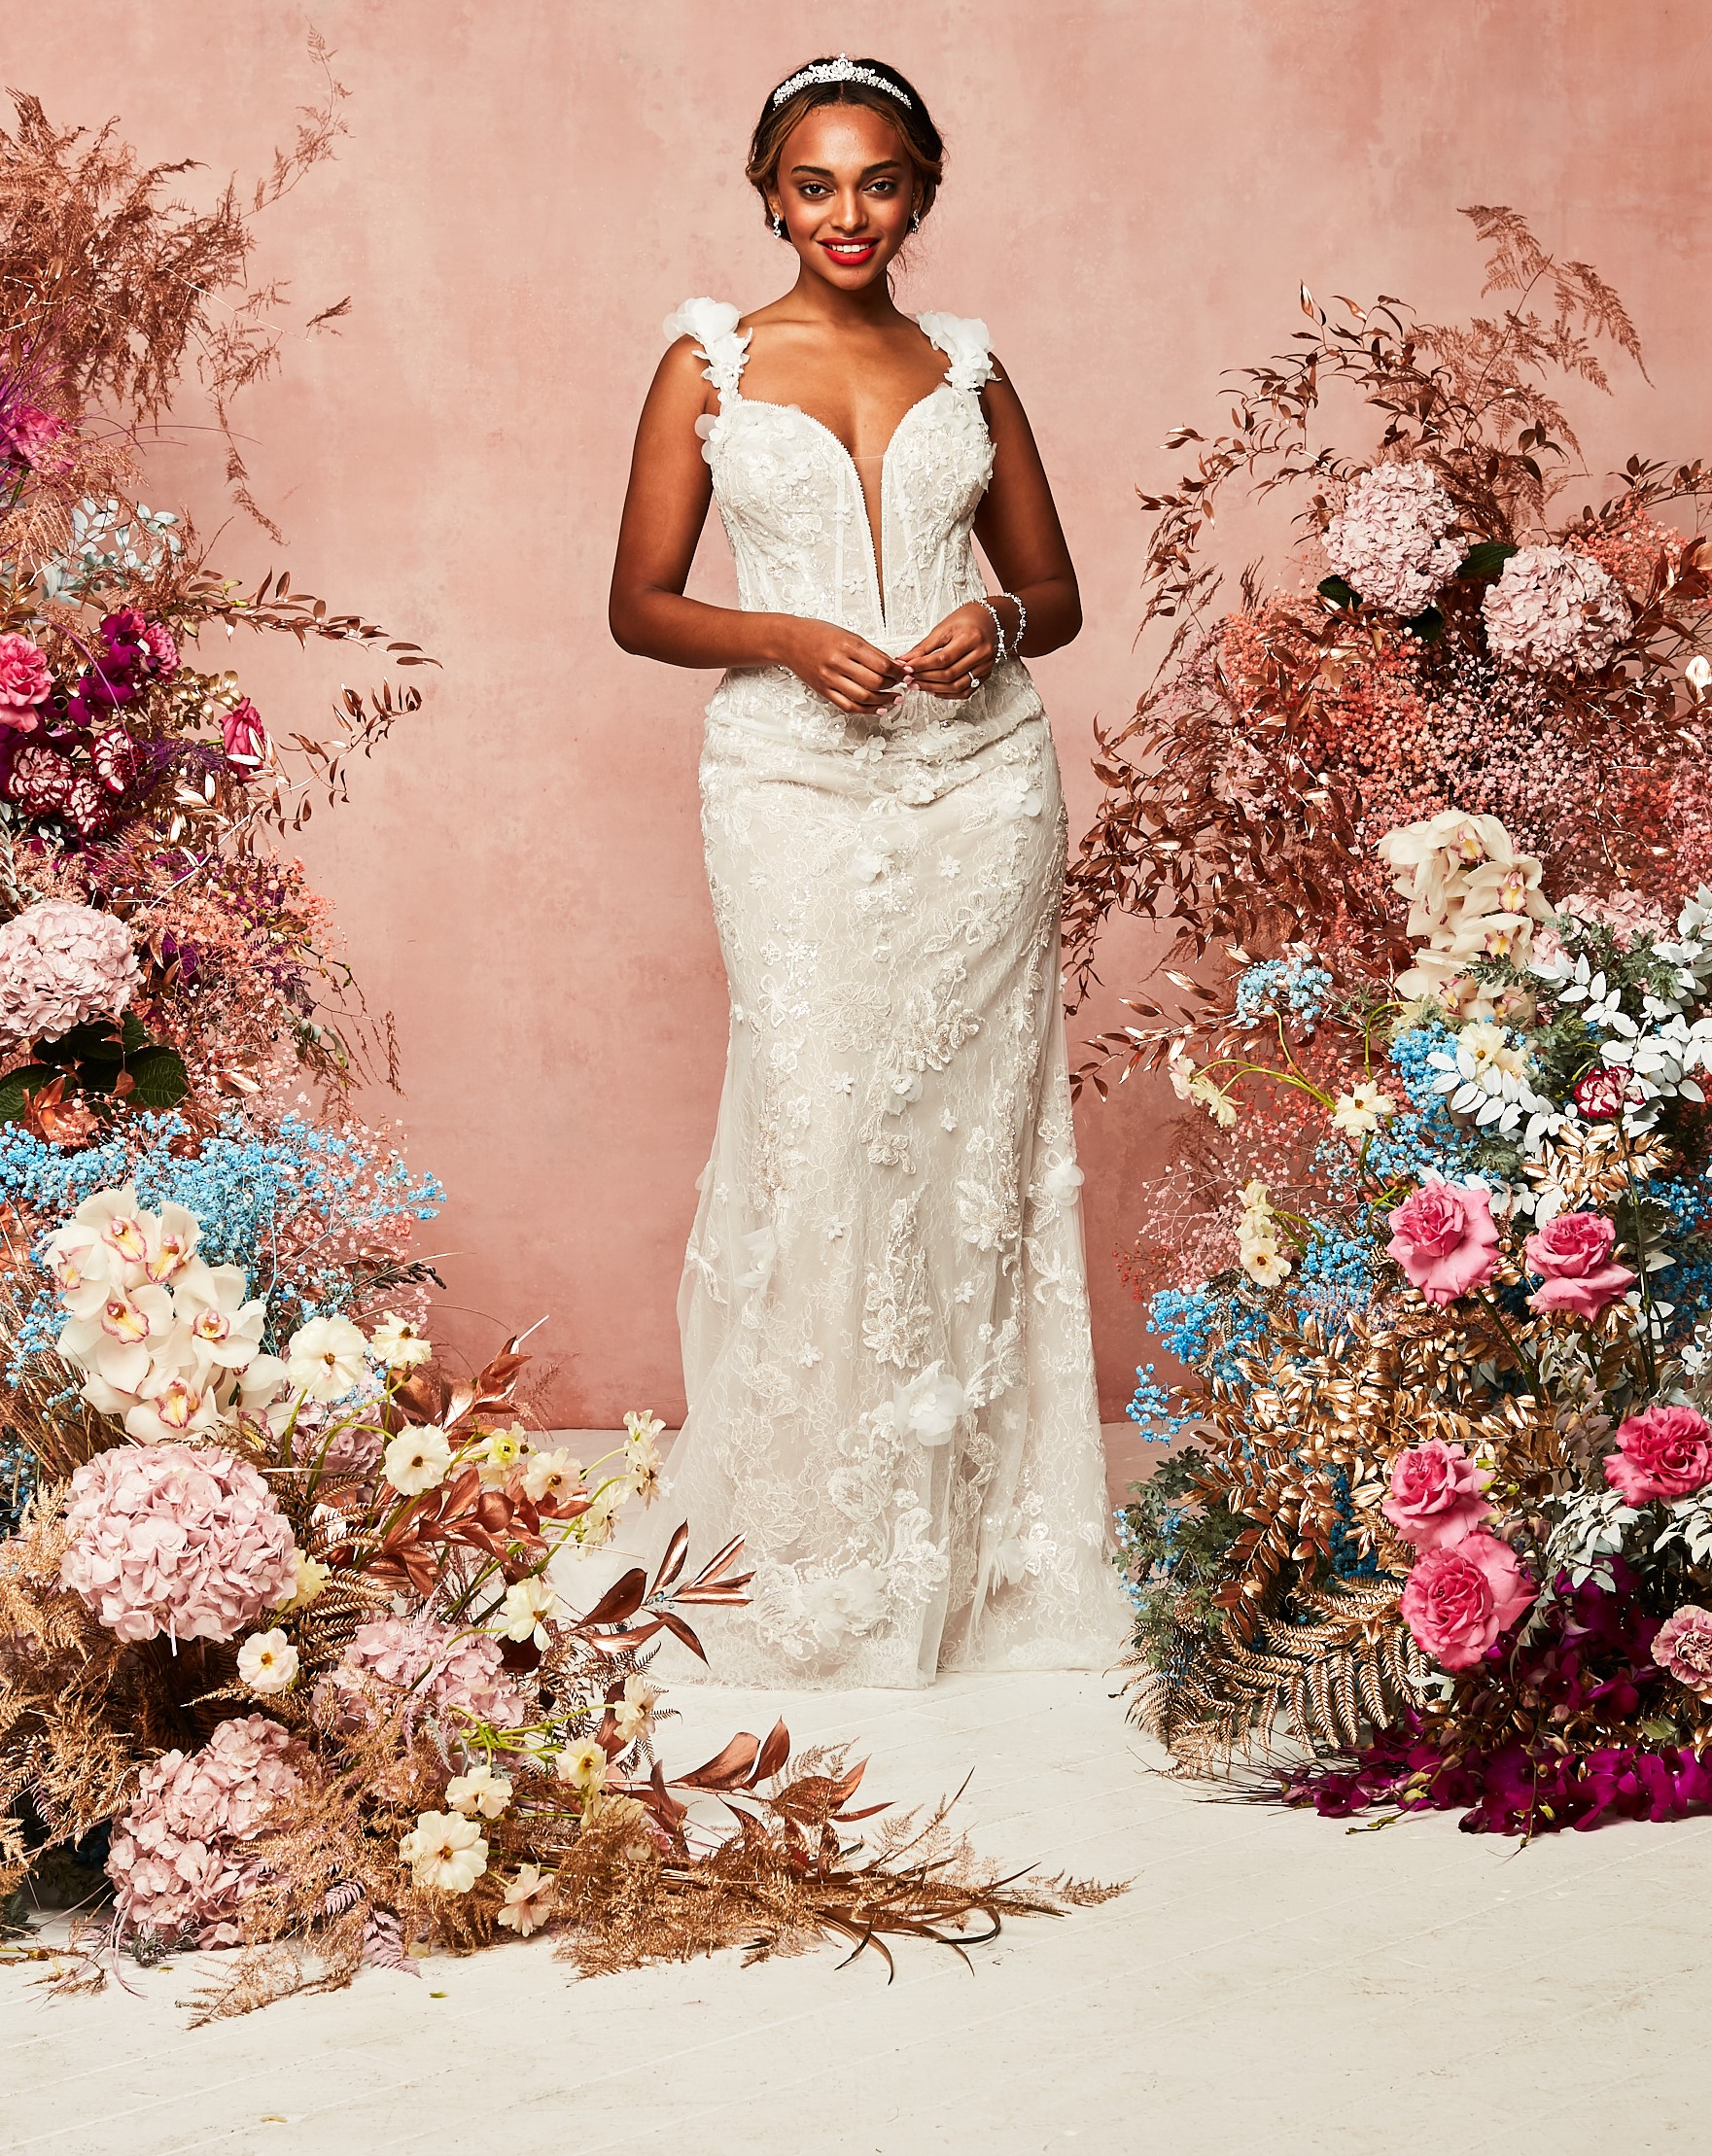 plunge neck gown with removable sleeves sporting both-shoulder look from David's Bridal Spring 2021 Collection